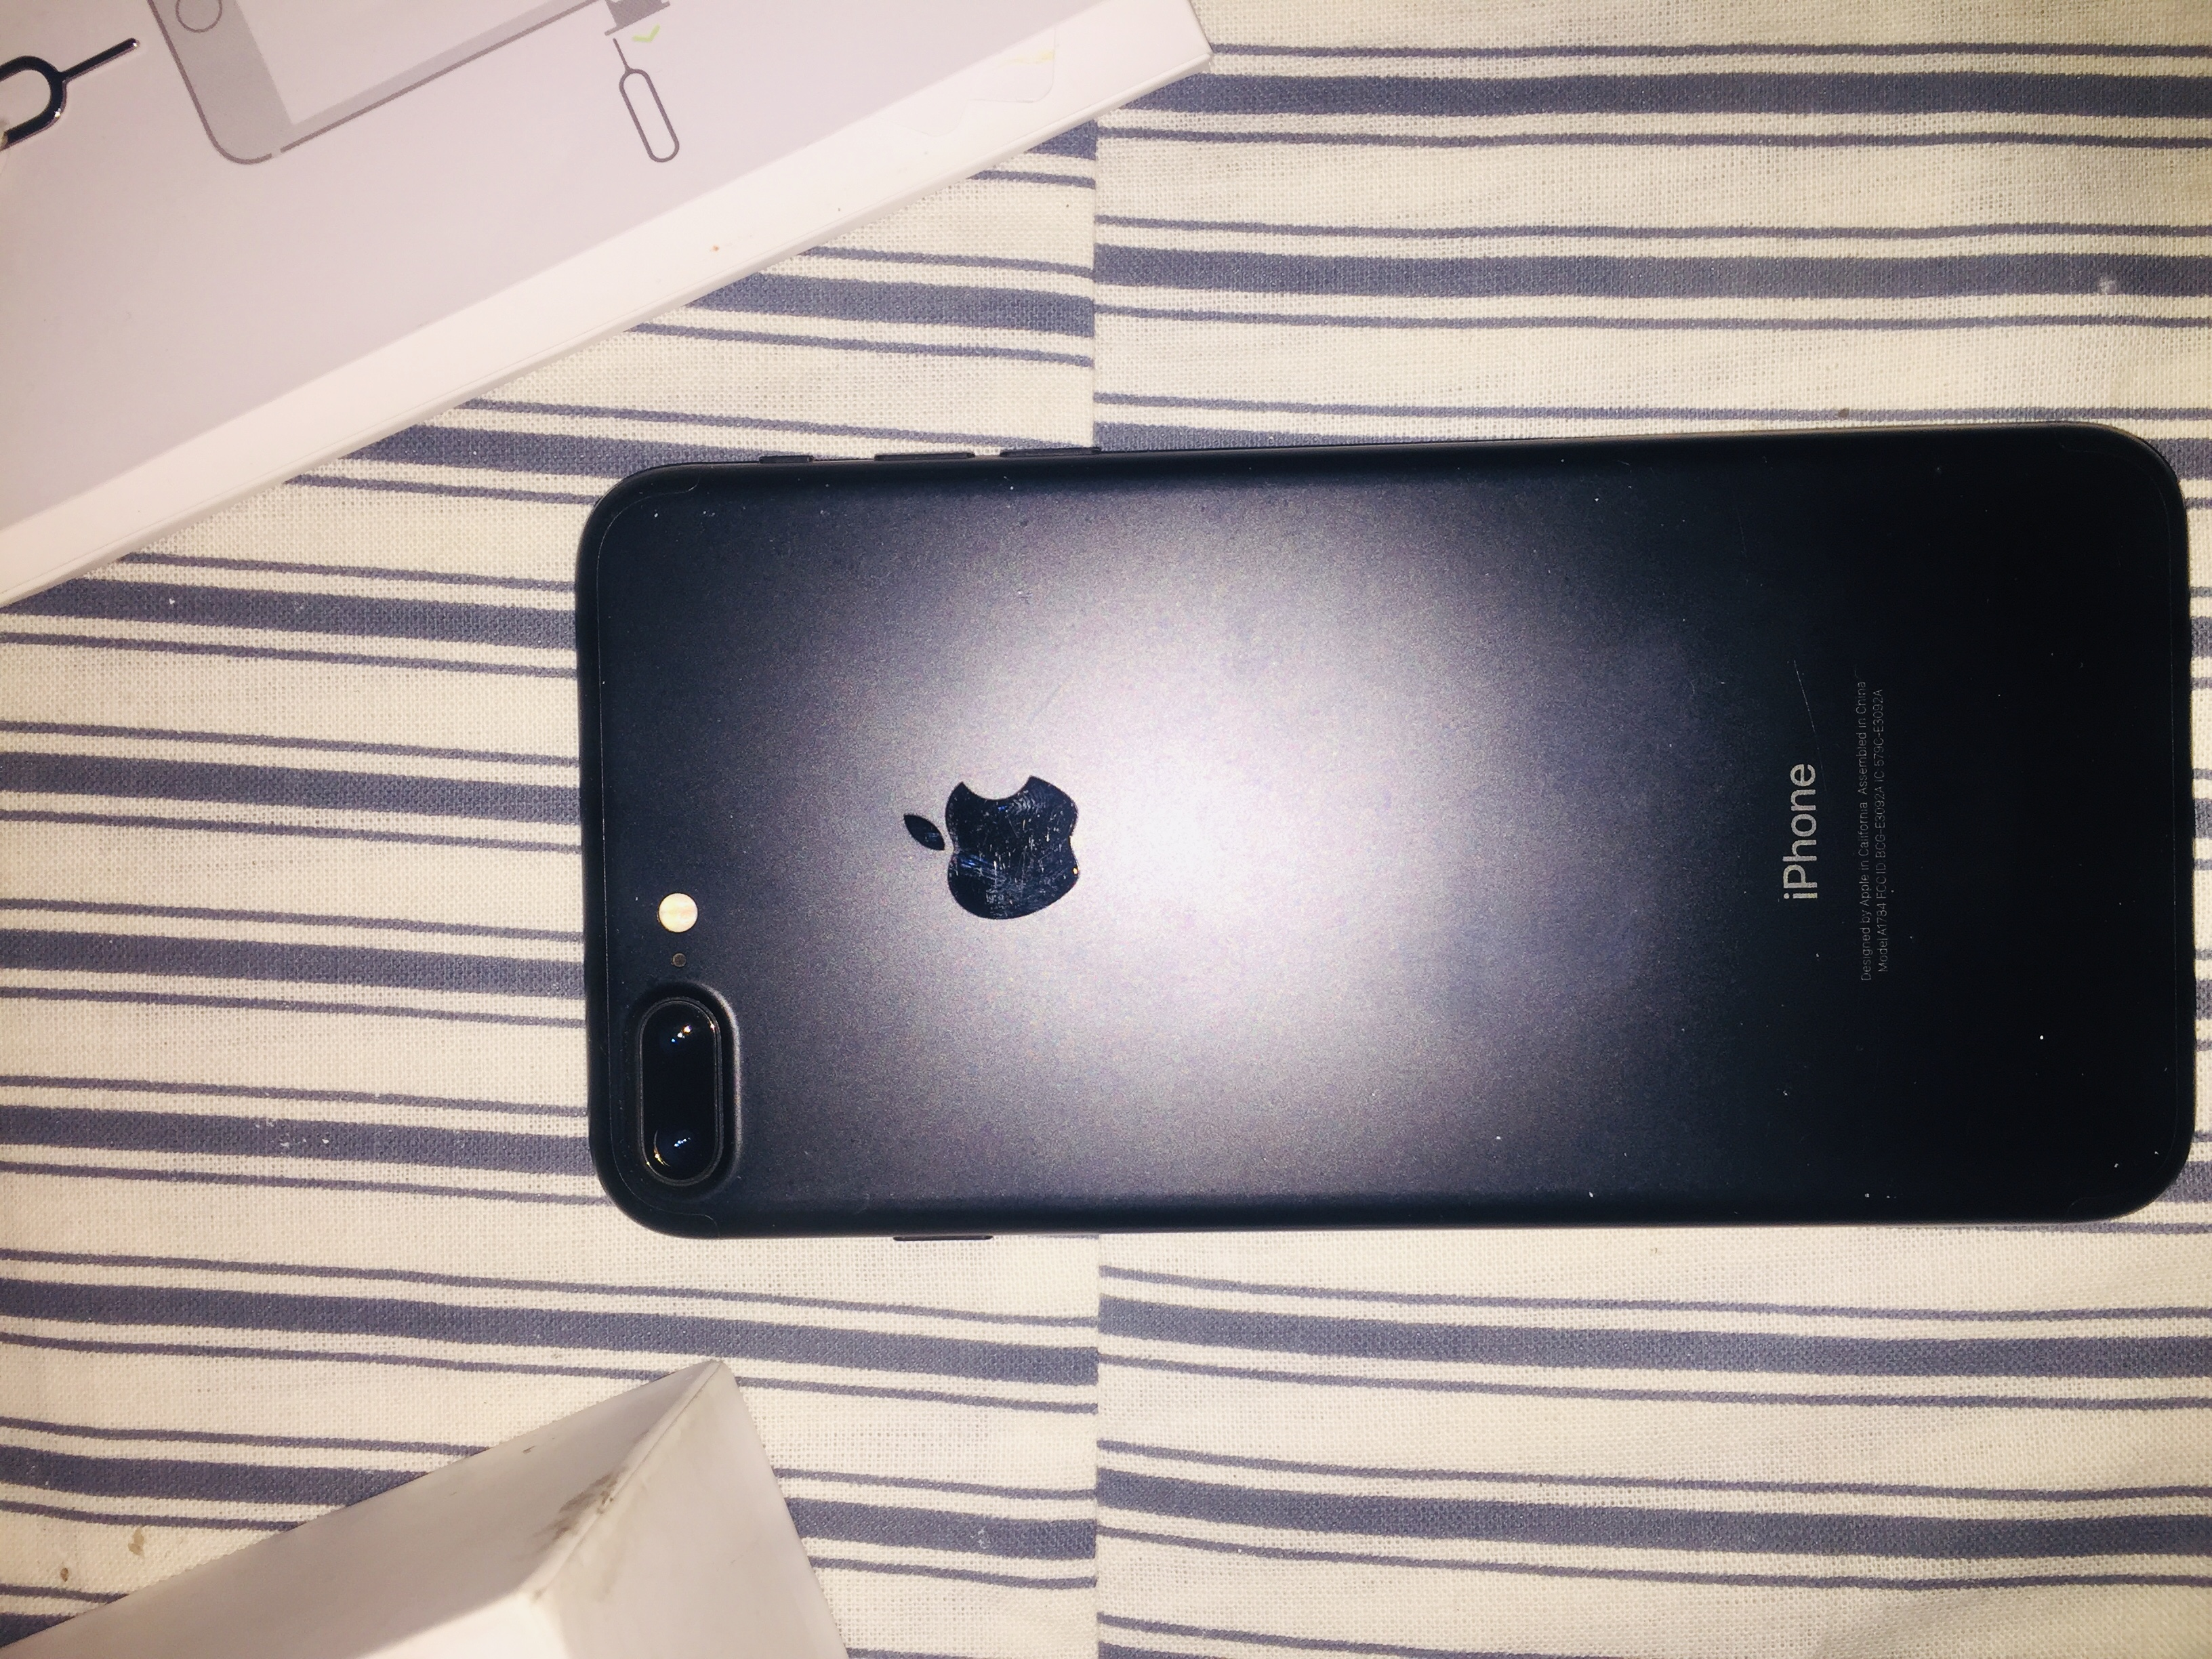 Iphone 7 plus 128 GB PTA approved - photo 2